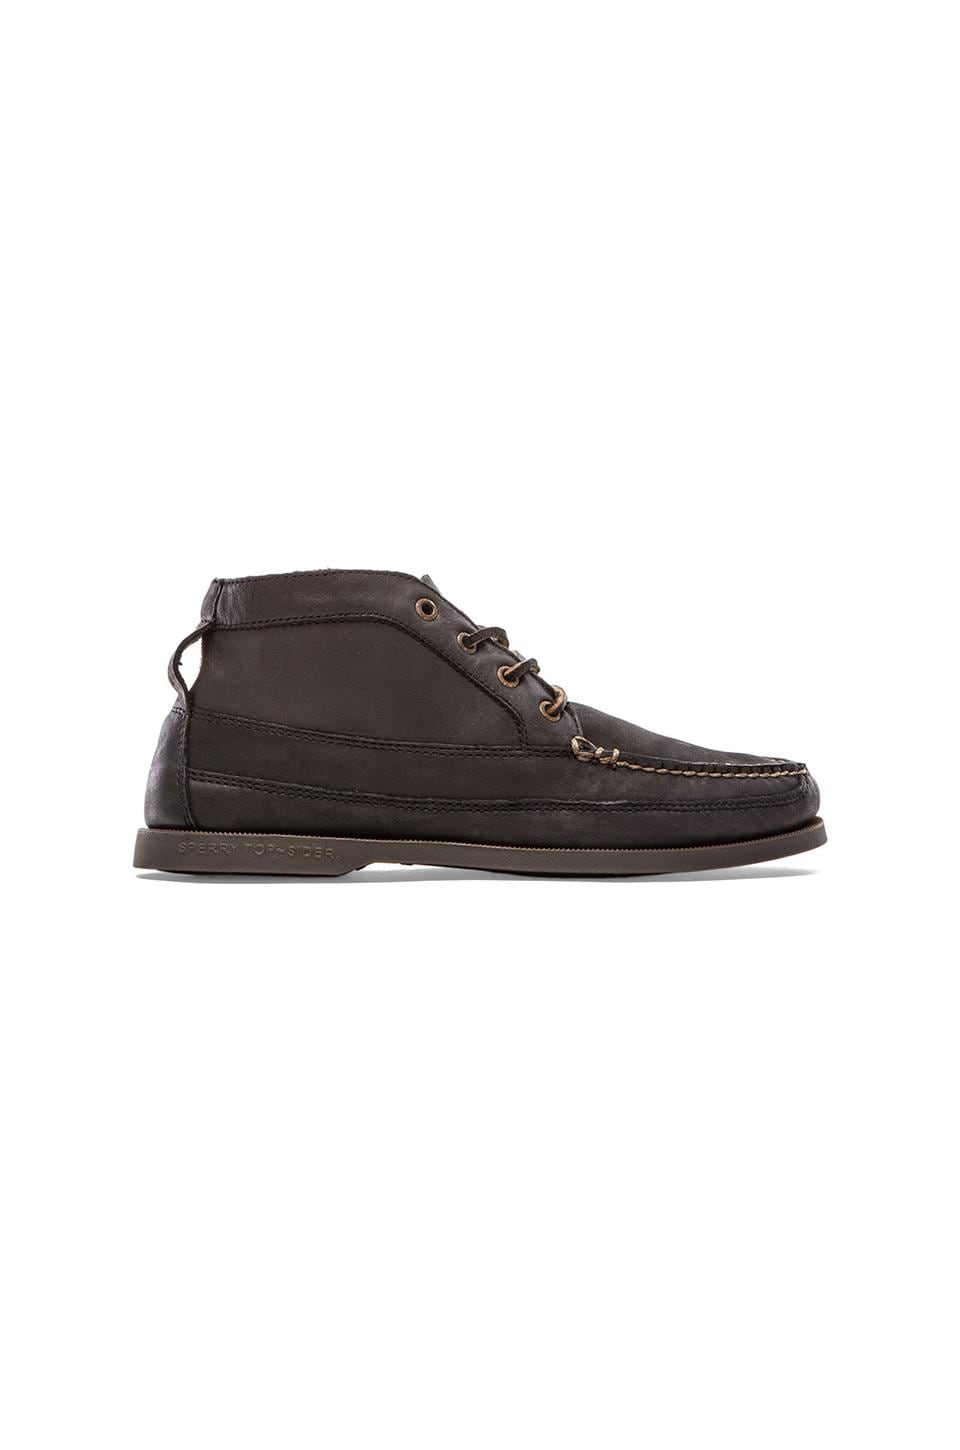 Sperry Top-Sider A/O Boat Chukka in Black